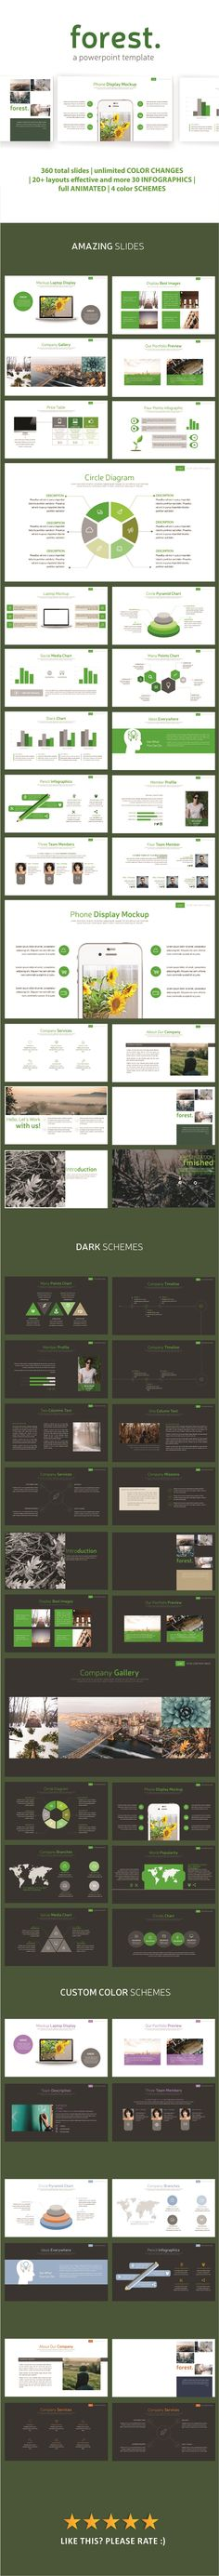 Forest PowerPoint Template. Download here: https://graphicriver.net/item/forest-powerpoint-template/17126875?ref=ksioks